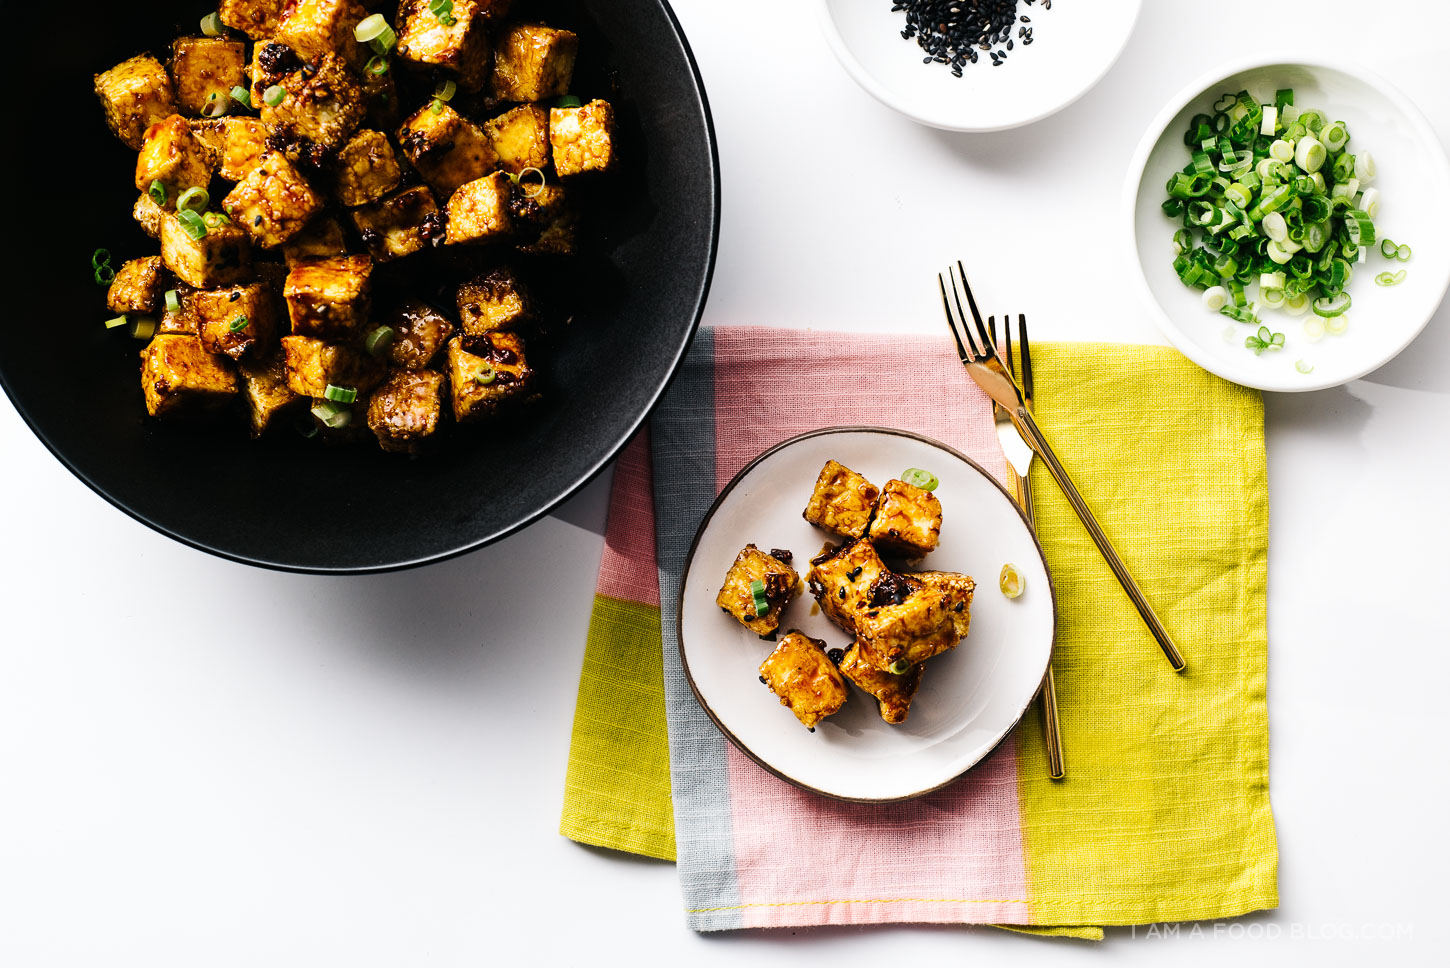 honey garlic tofu recipe - www.iamafoodblog.com